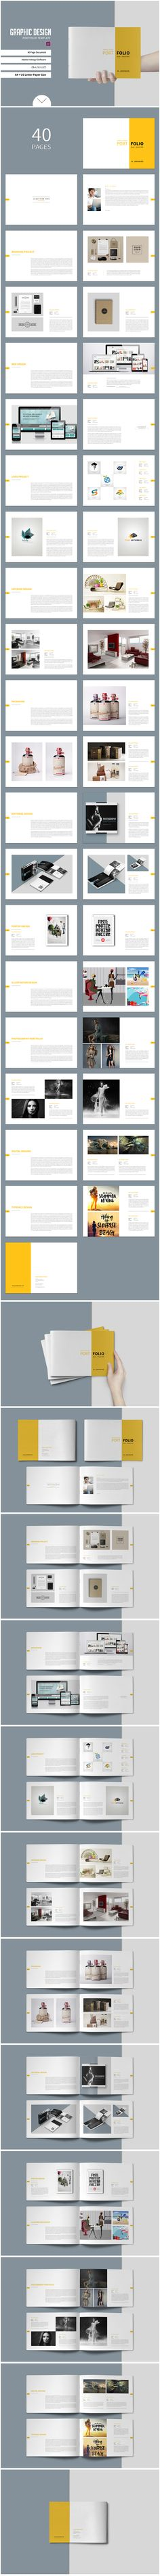 A4 Horizontal - Graphic Design Portfolio TemplateThis is 40 page minimal brochure template is for designers working on product/graphic design portfolios interior design catalogues, product catalogues, and agency based projects.Just drop in your own pi…